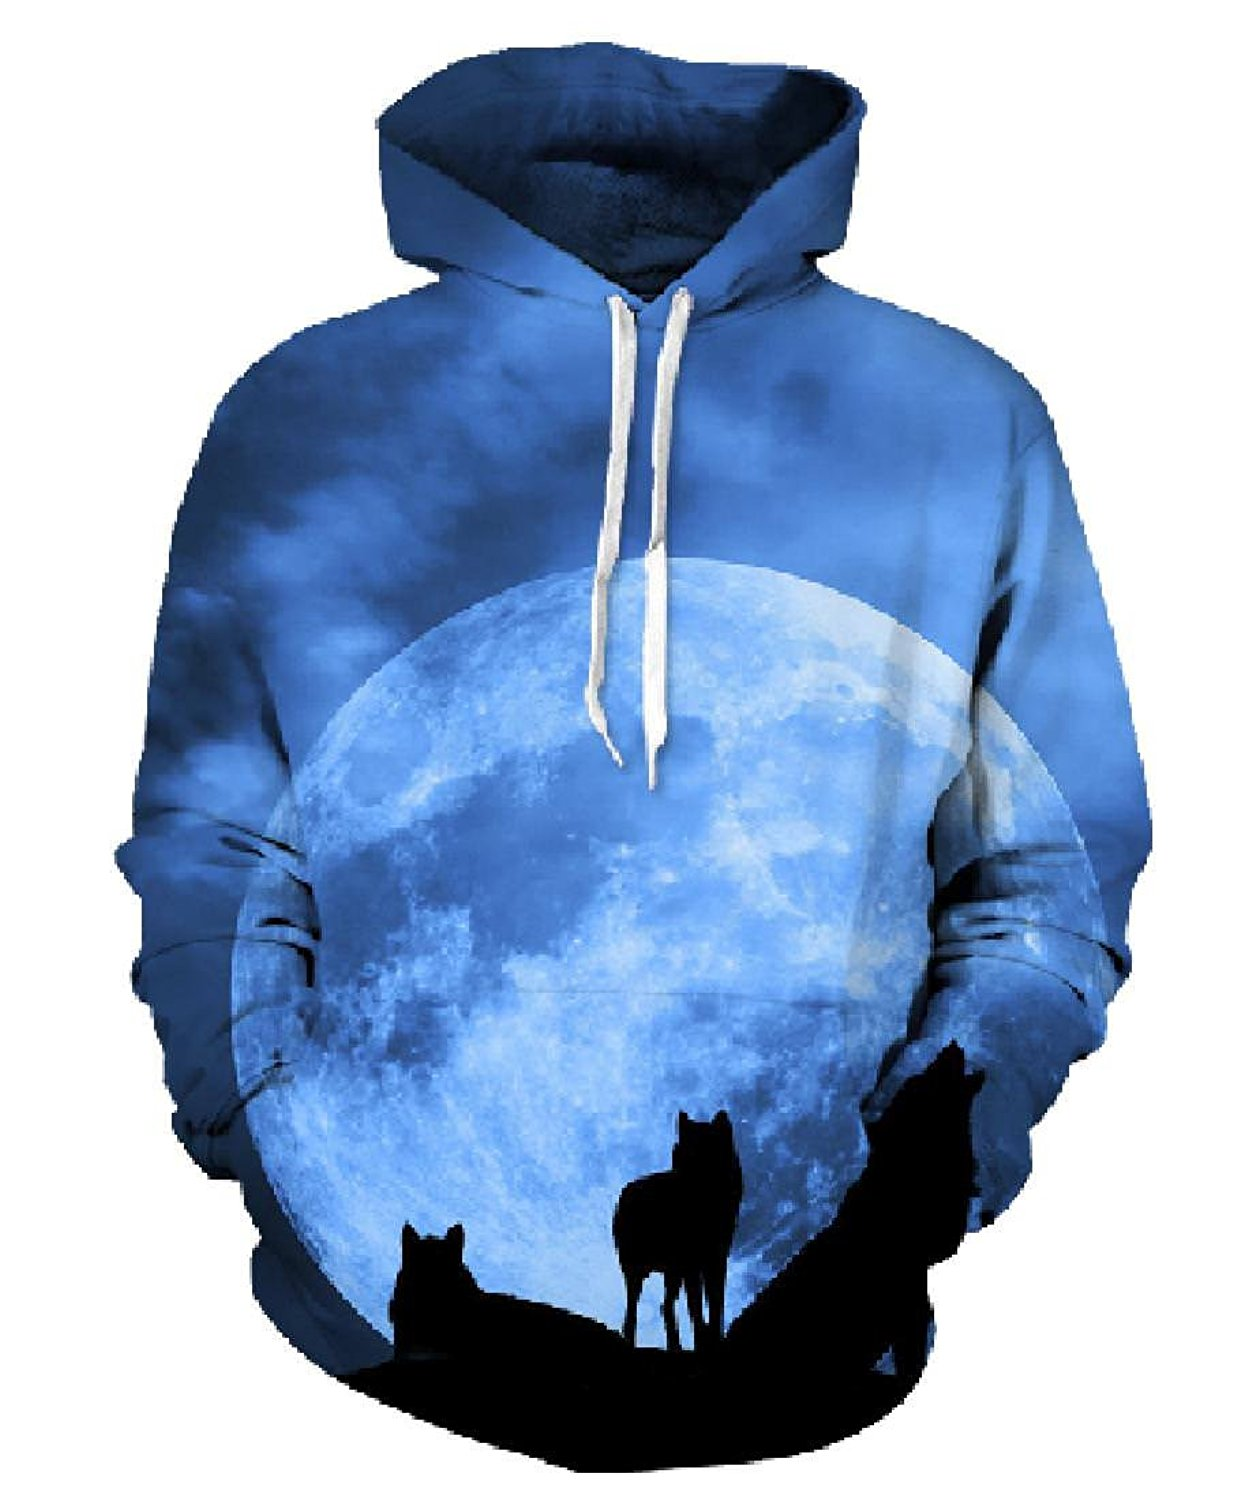 c73acf260bbd2e Get Quotations · 9YOULOVE 3D Sweatshirts Cool Wolf Hoodies Long Sleeve Pullovers  Hooded Hoody